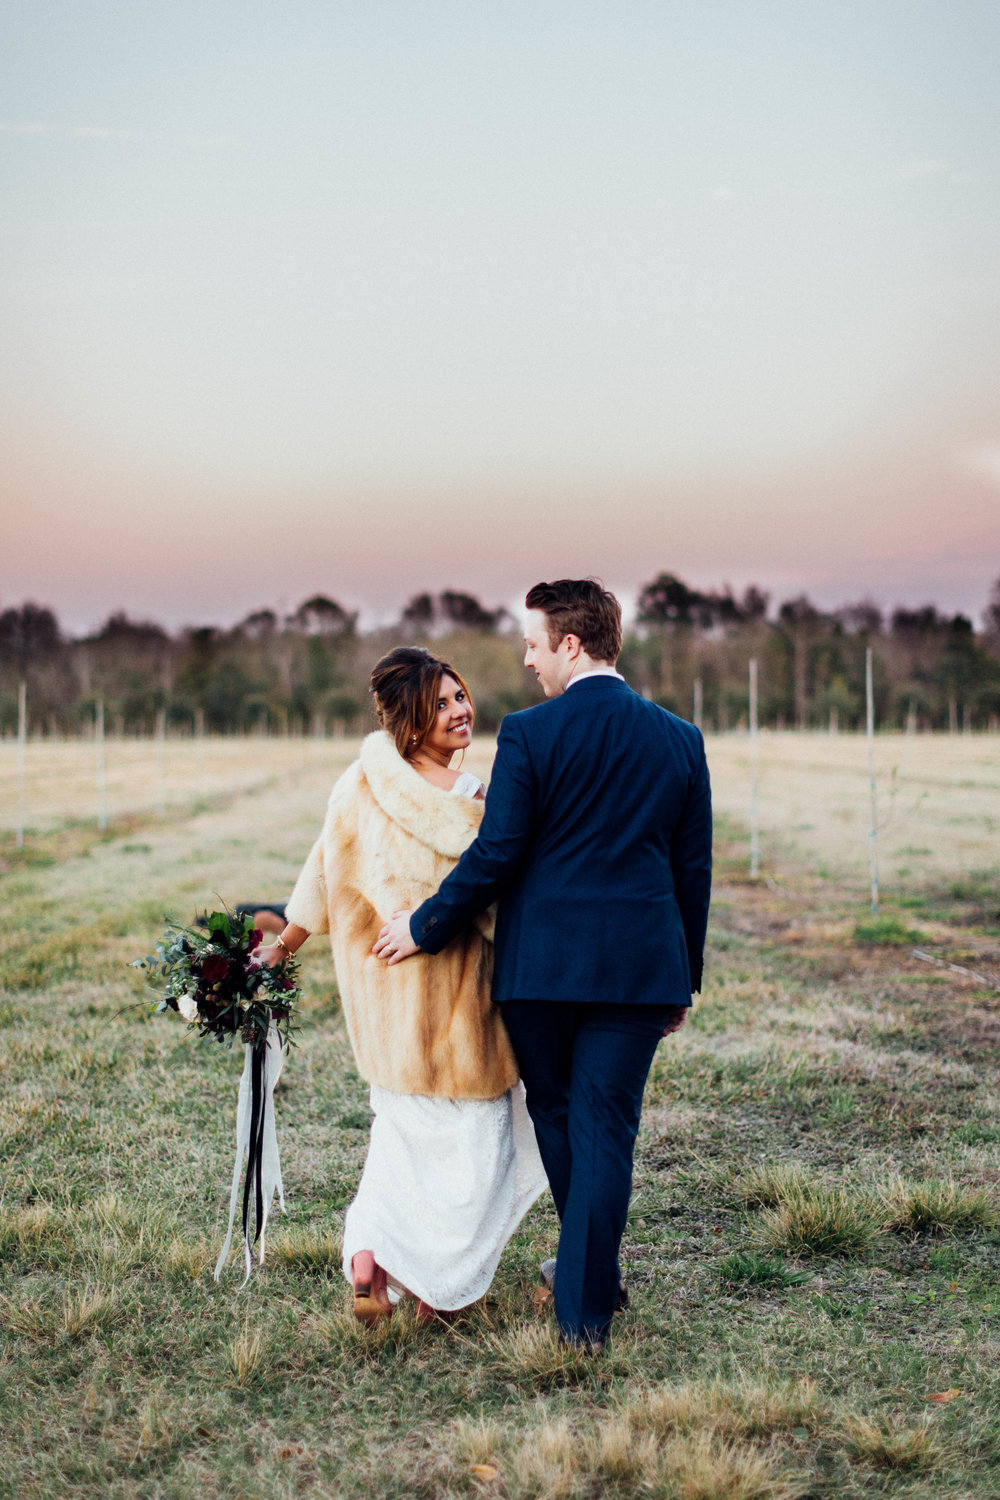 christinakarstphotography_jacksonvillewedding_congareeandpennwedding_london+liam-349.jpg